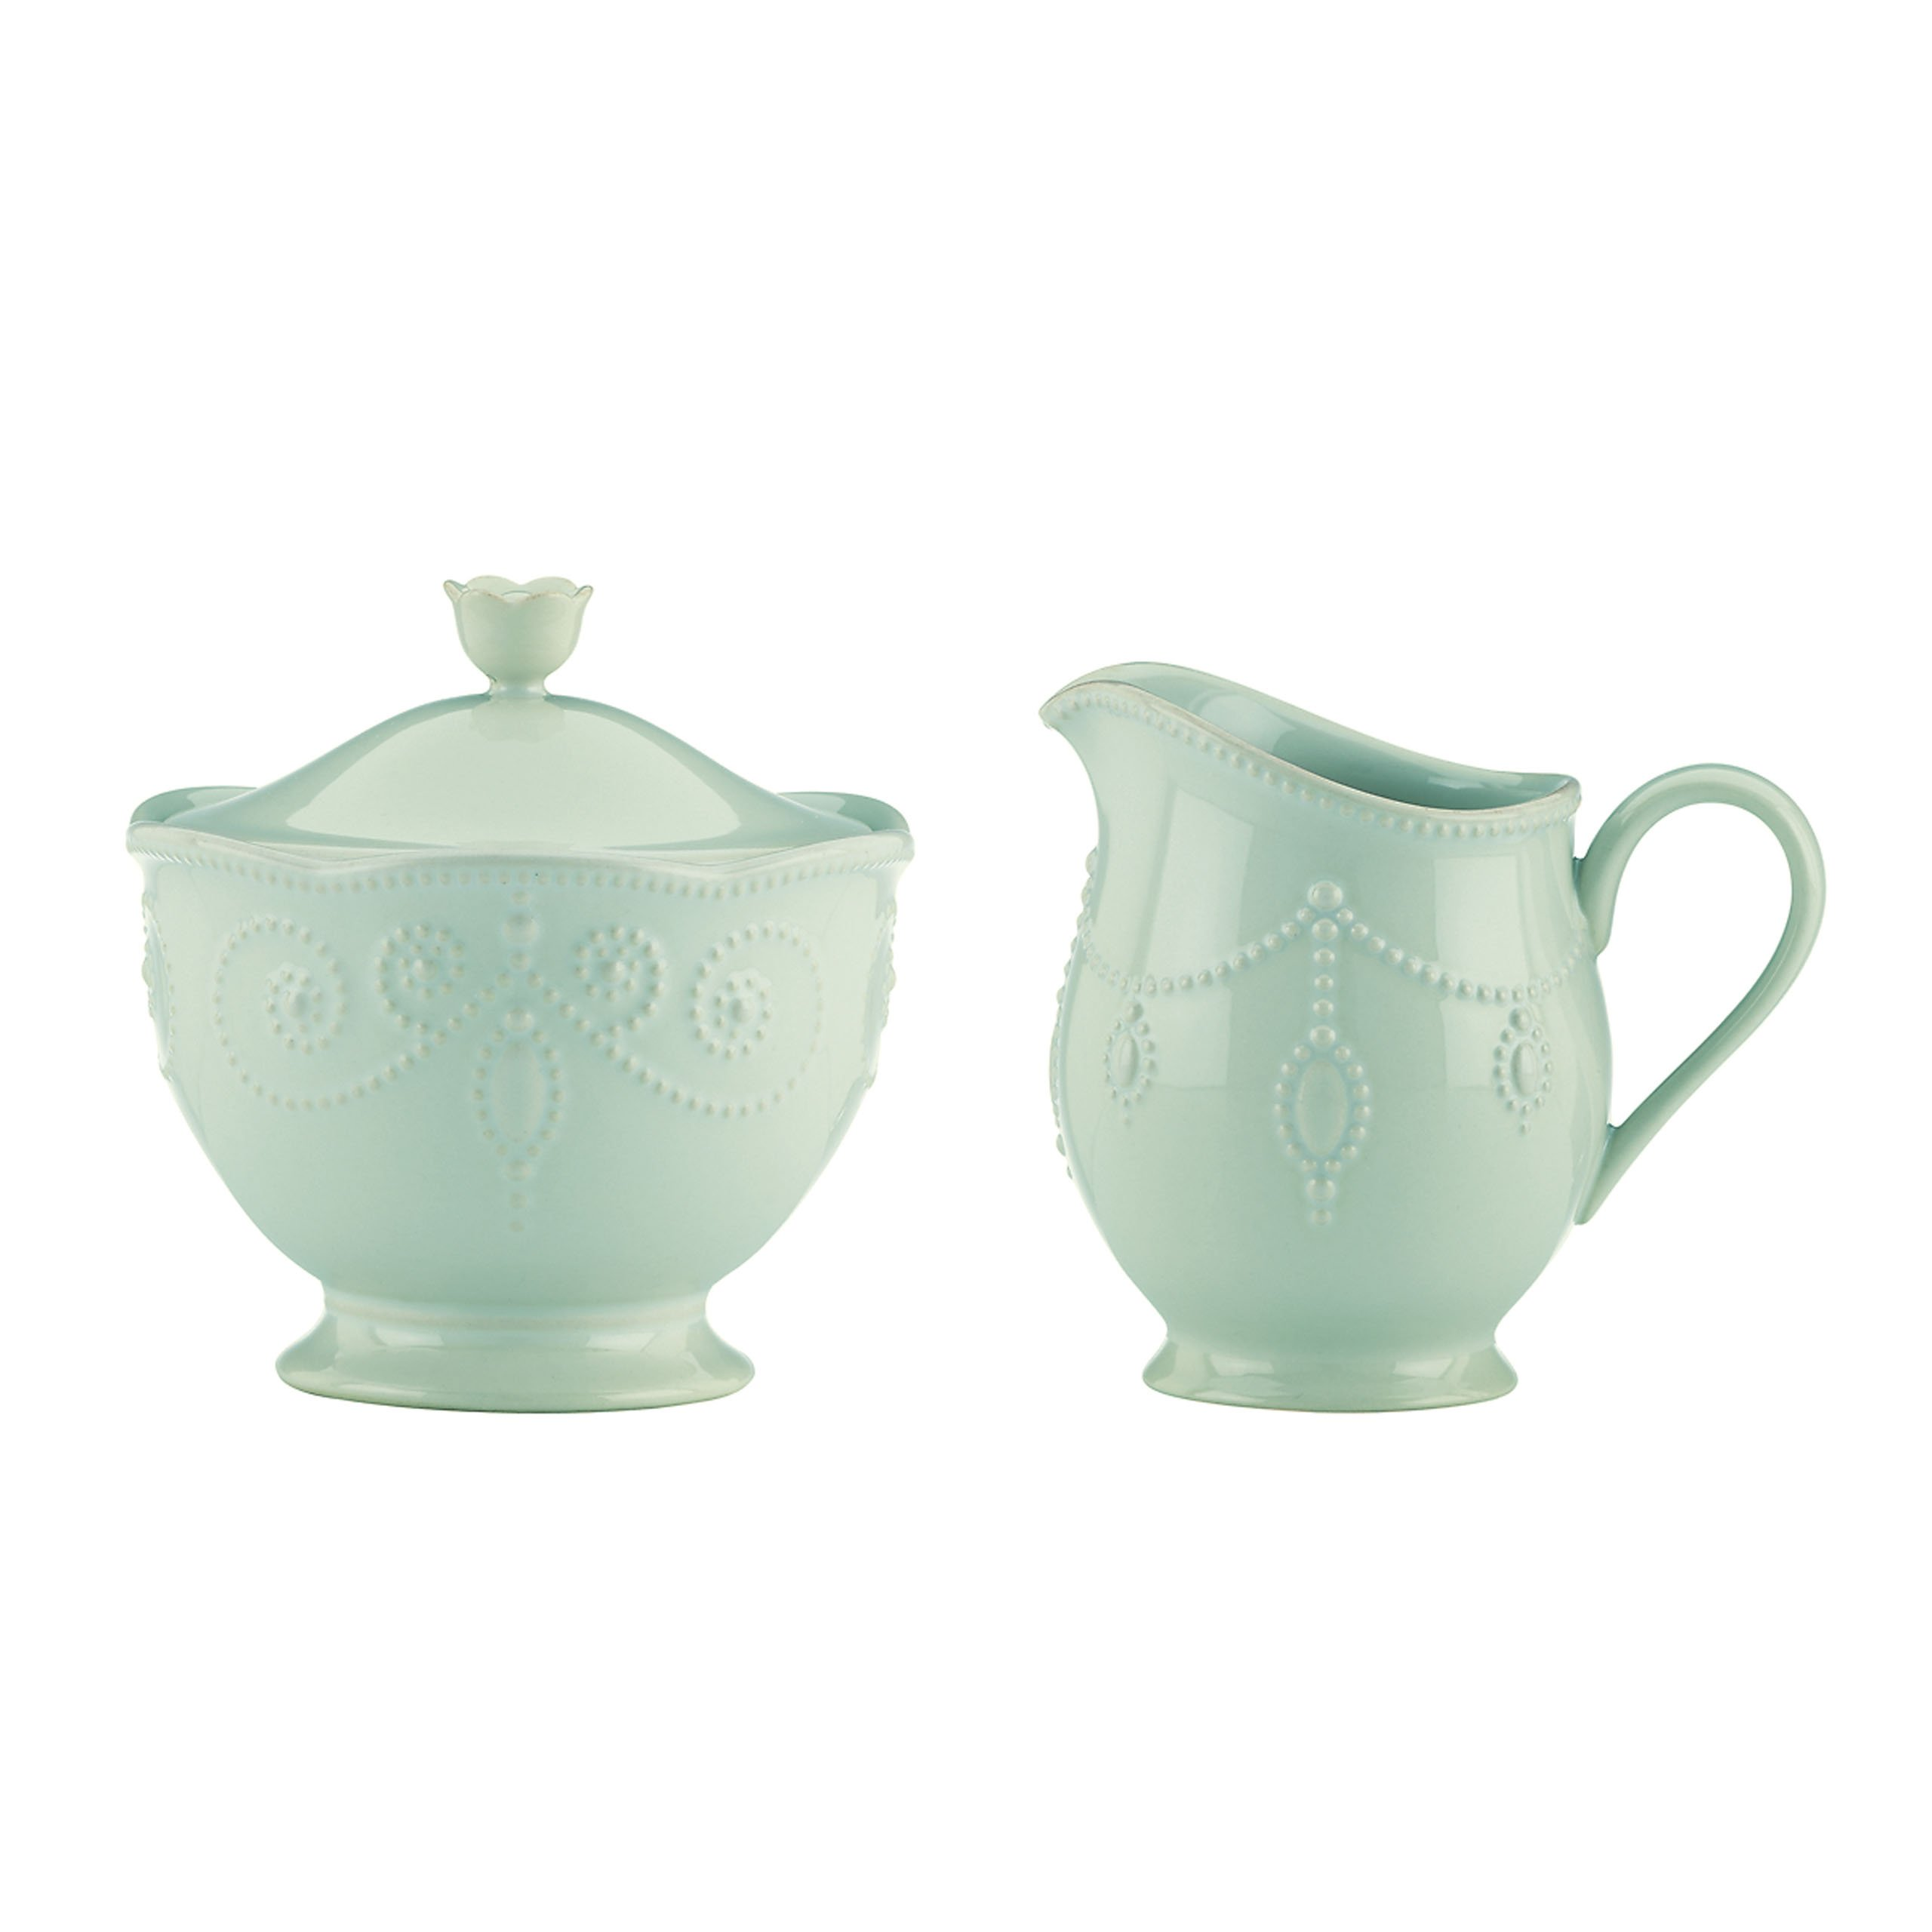 Lenox French Perle Sugar and Creamer Set, Ice Blue